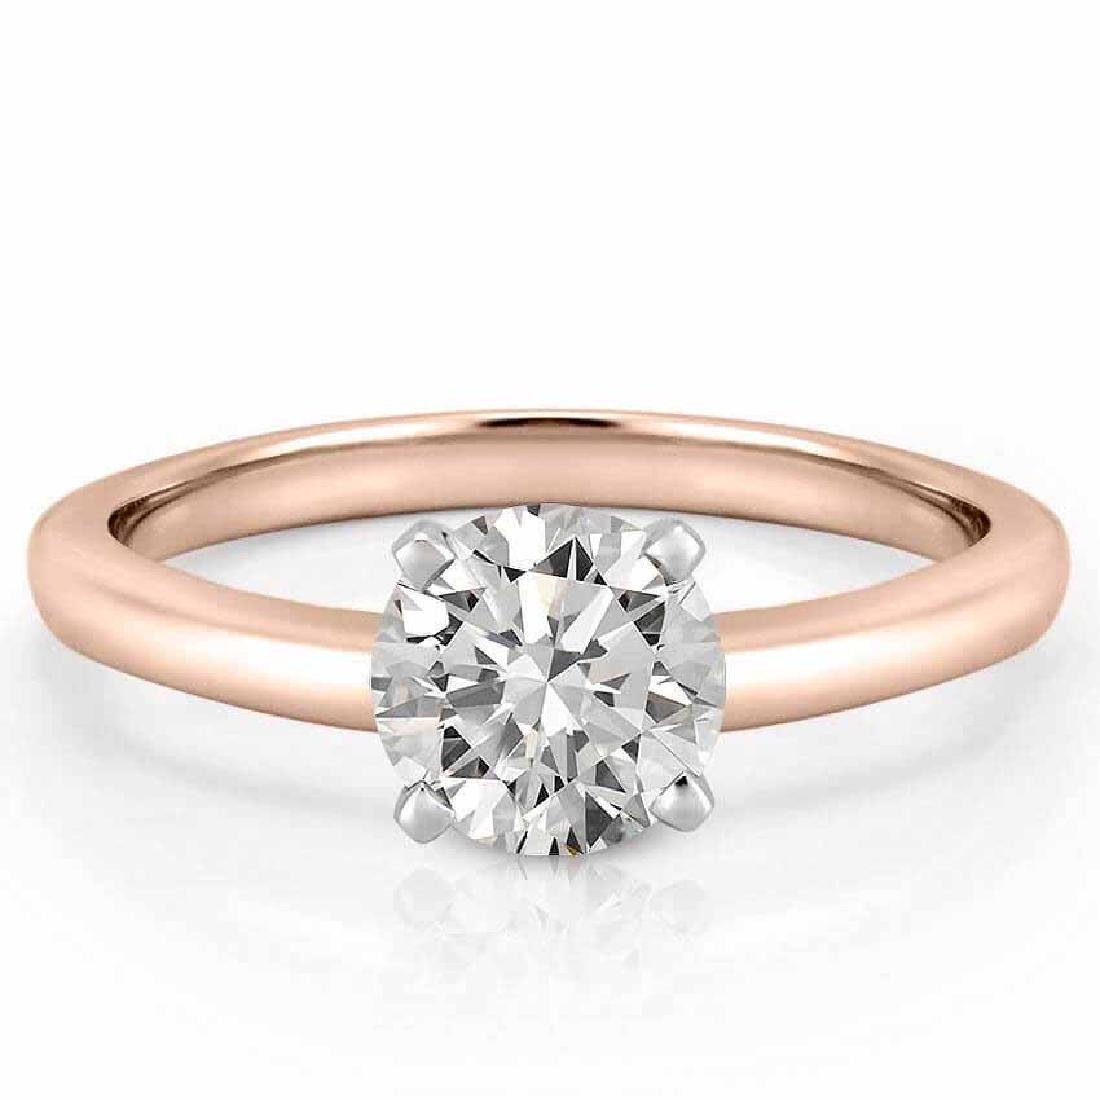 CERTIFIED 1.11 CTW I/I1 ROUND DIAMOND SOLITAIRE RING IN